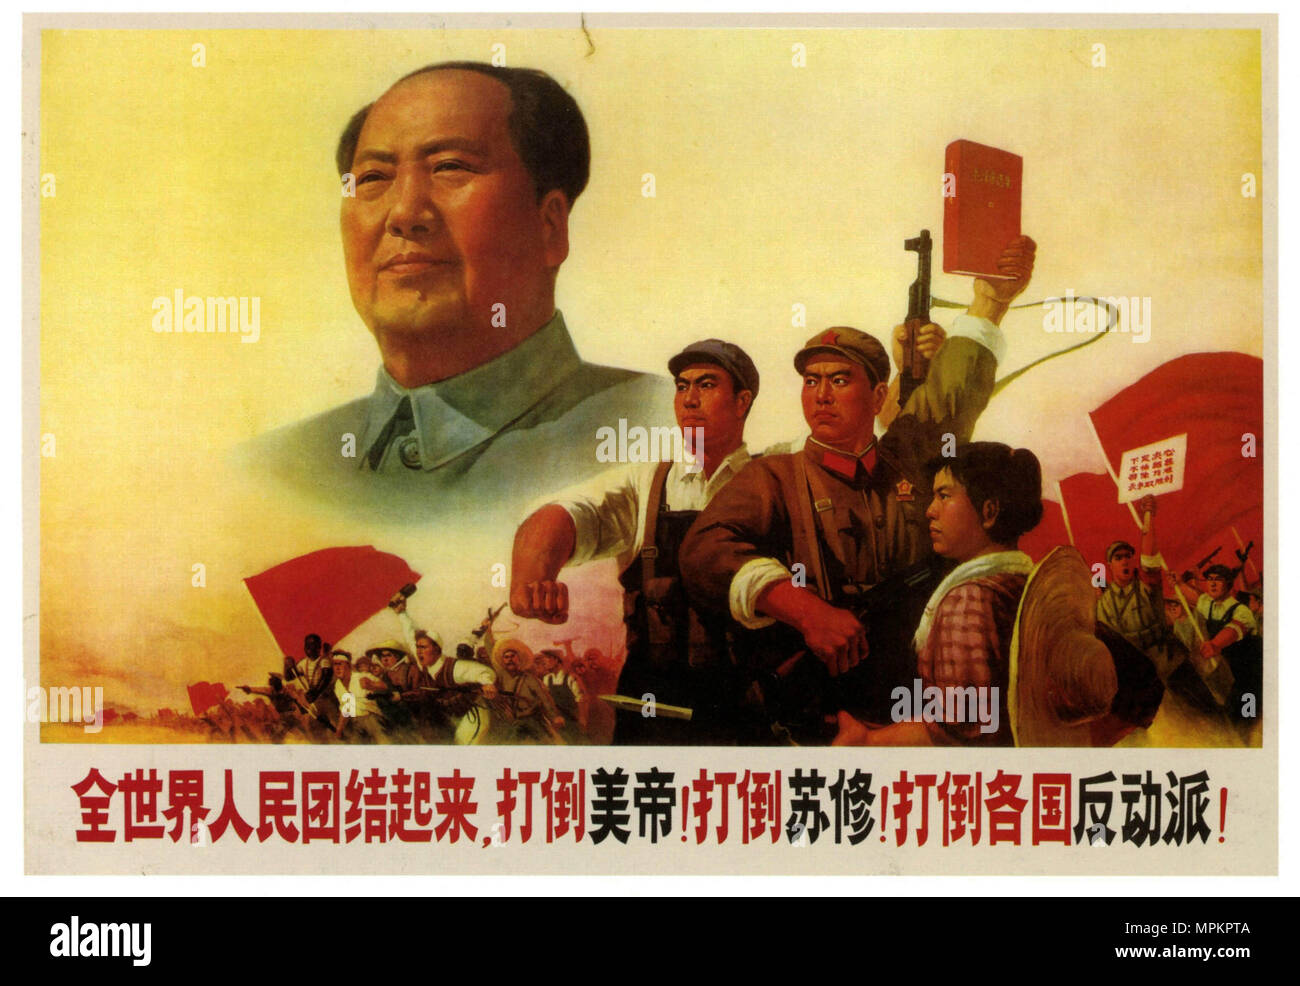 China Communist Vintage Propaganda Poster - All People of the World Unite to Overthrow American Imperialism, Soviet Revisionism and Reactionaries from All Nations, 1969 - Stock Image